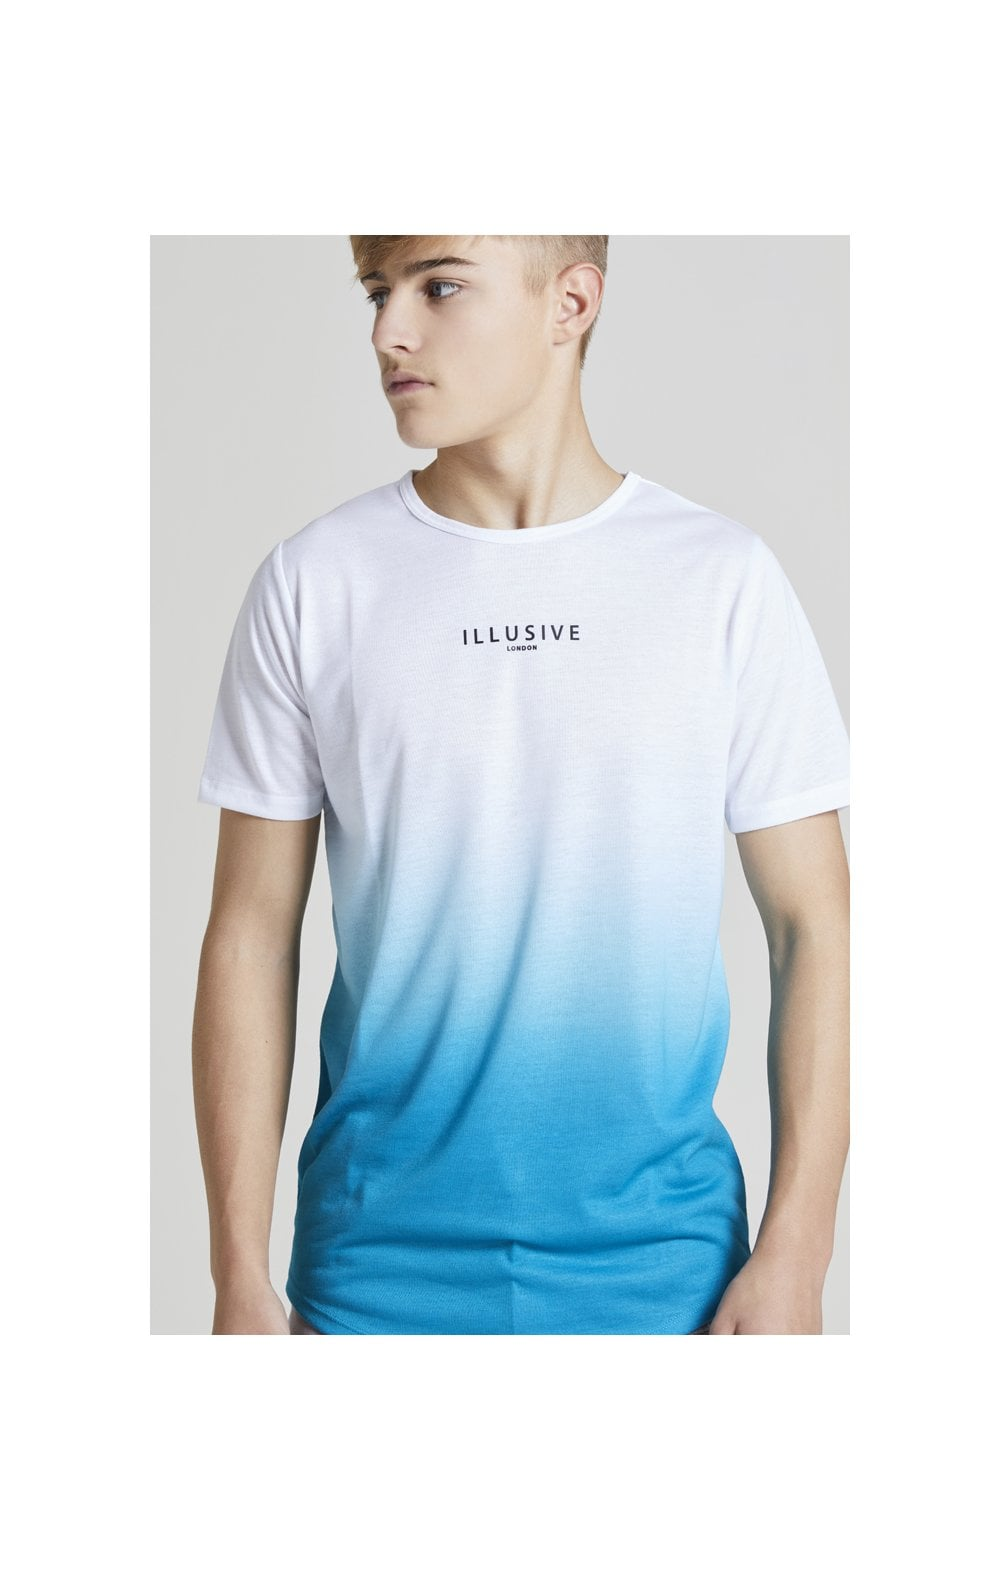 Illusive London Core Fade Tee – White & Teal Green